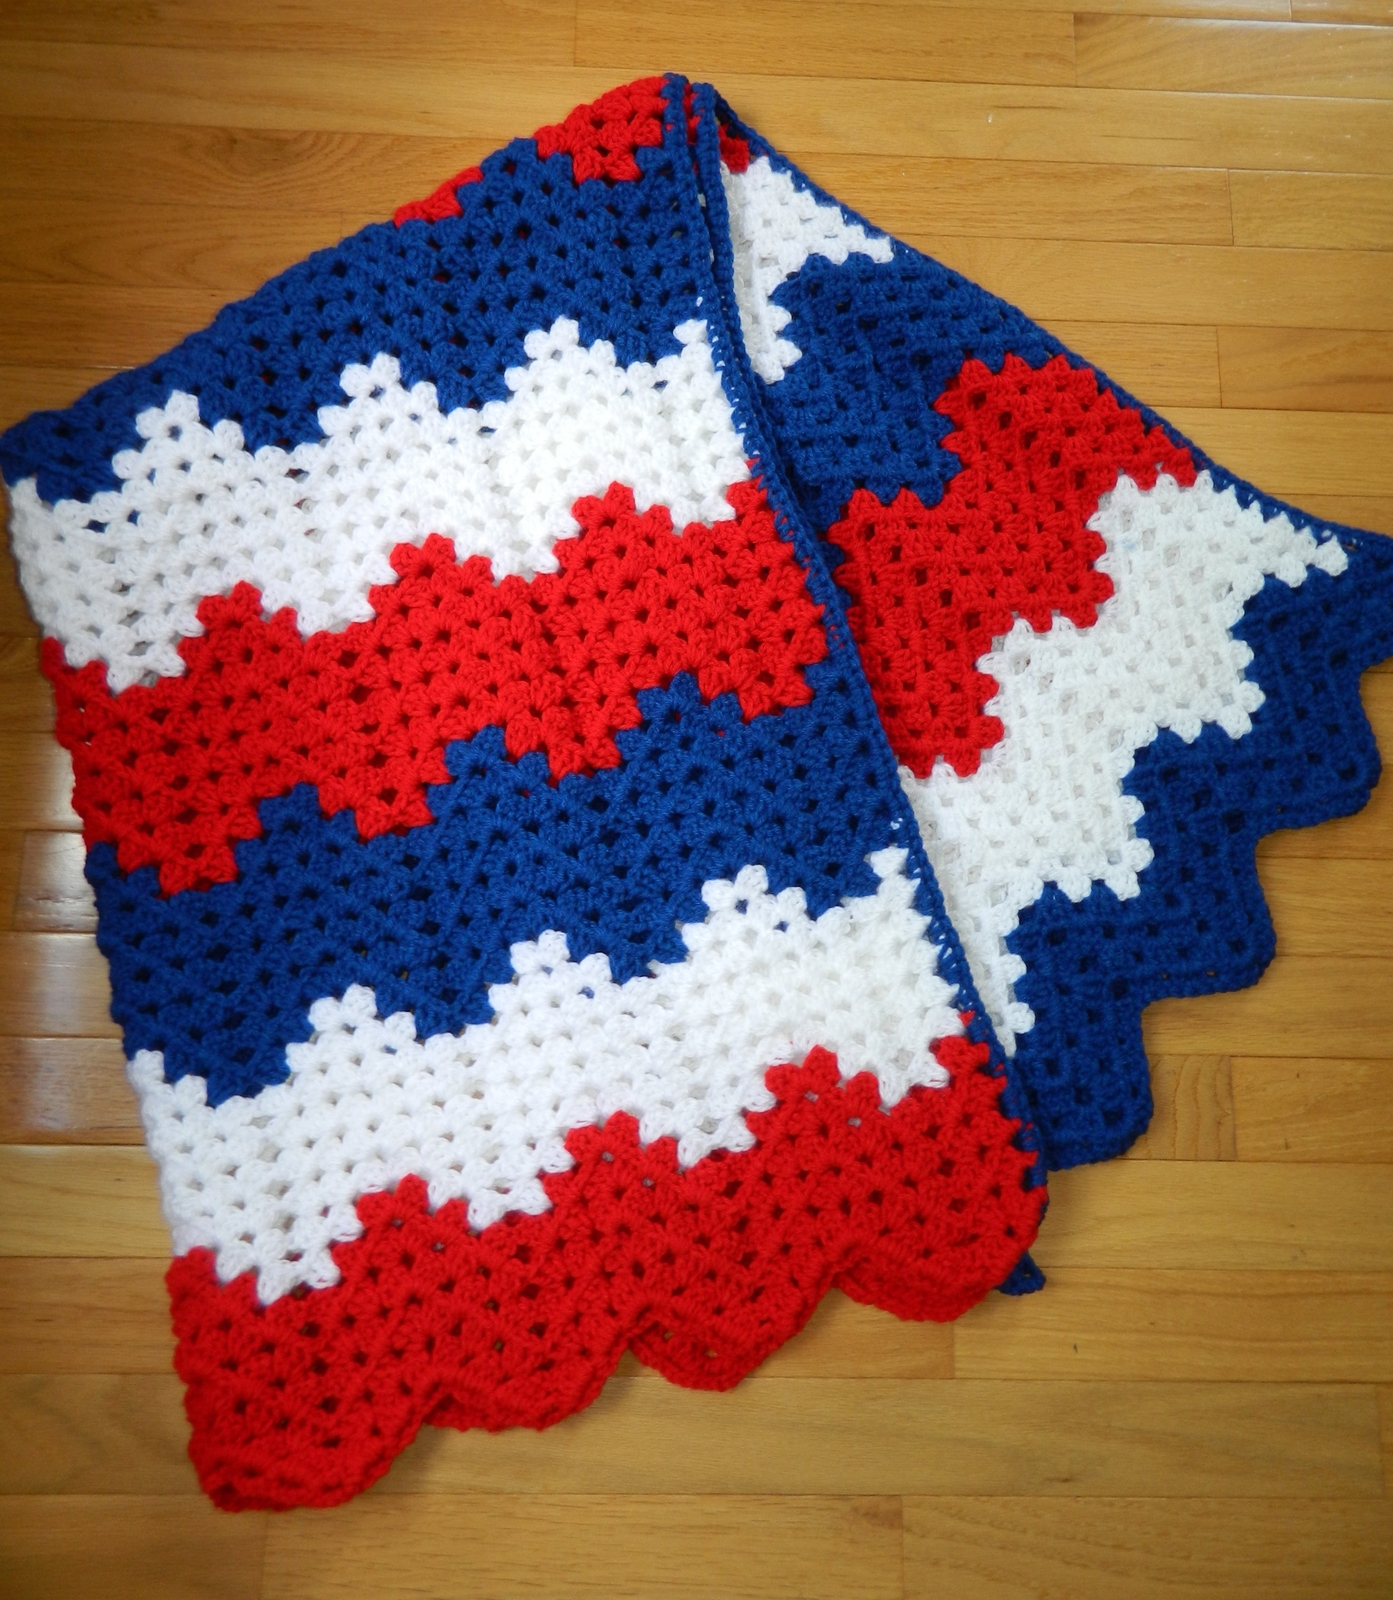 patriotic afghan blanket w chevron wavy ripple crochet pattern 38 x 54 blankets throws. Black Bedroom Furniture Sets. Home Design Ideas